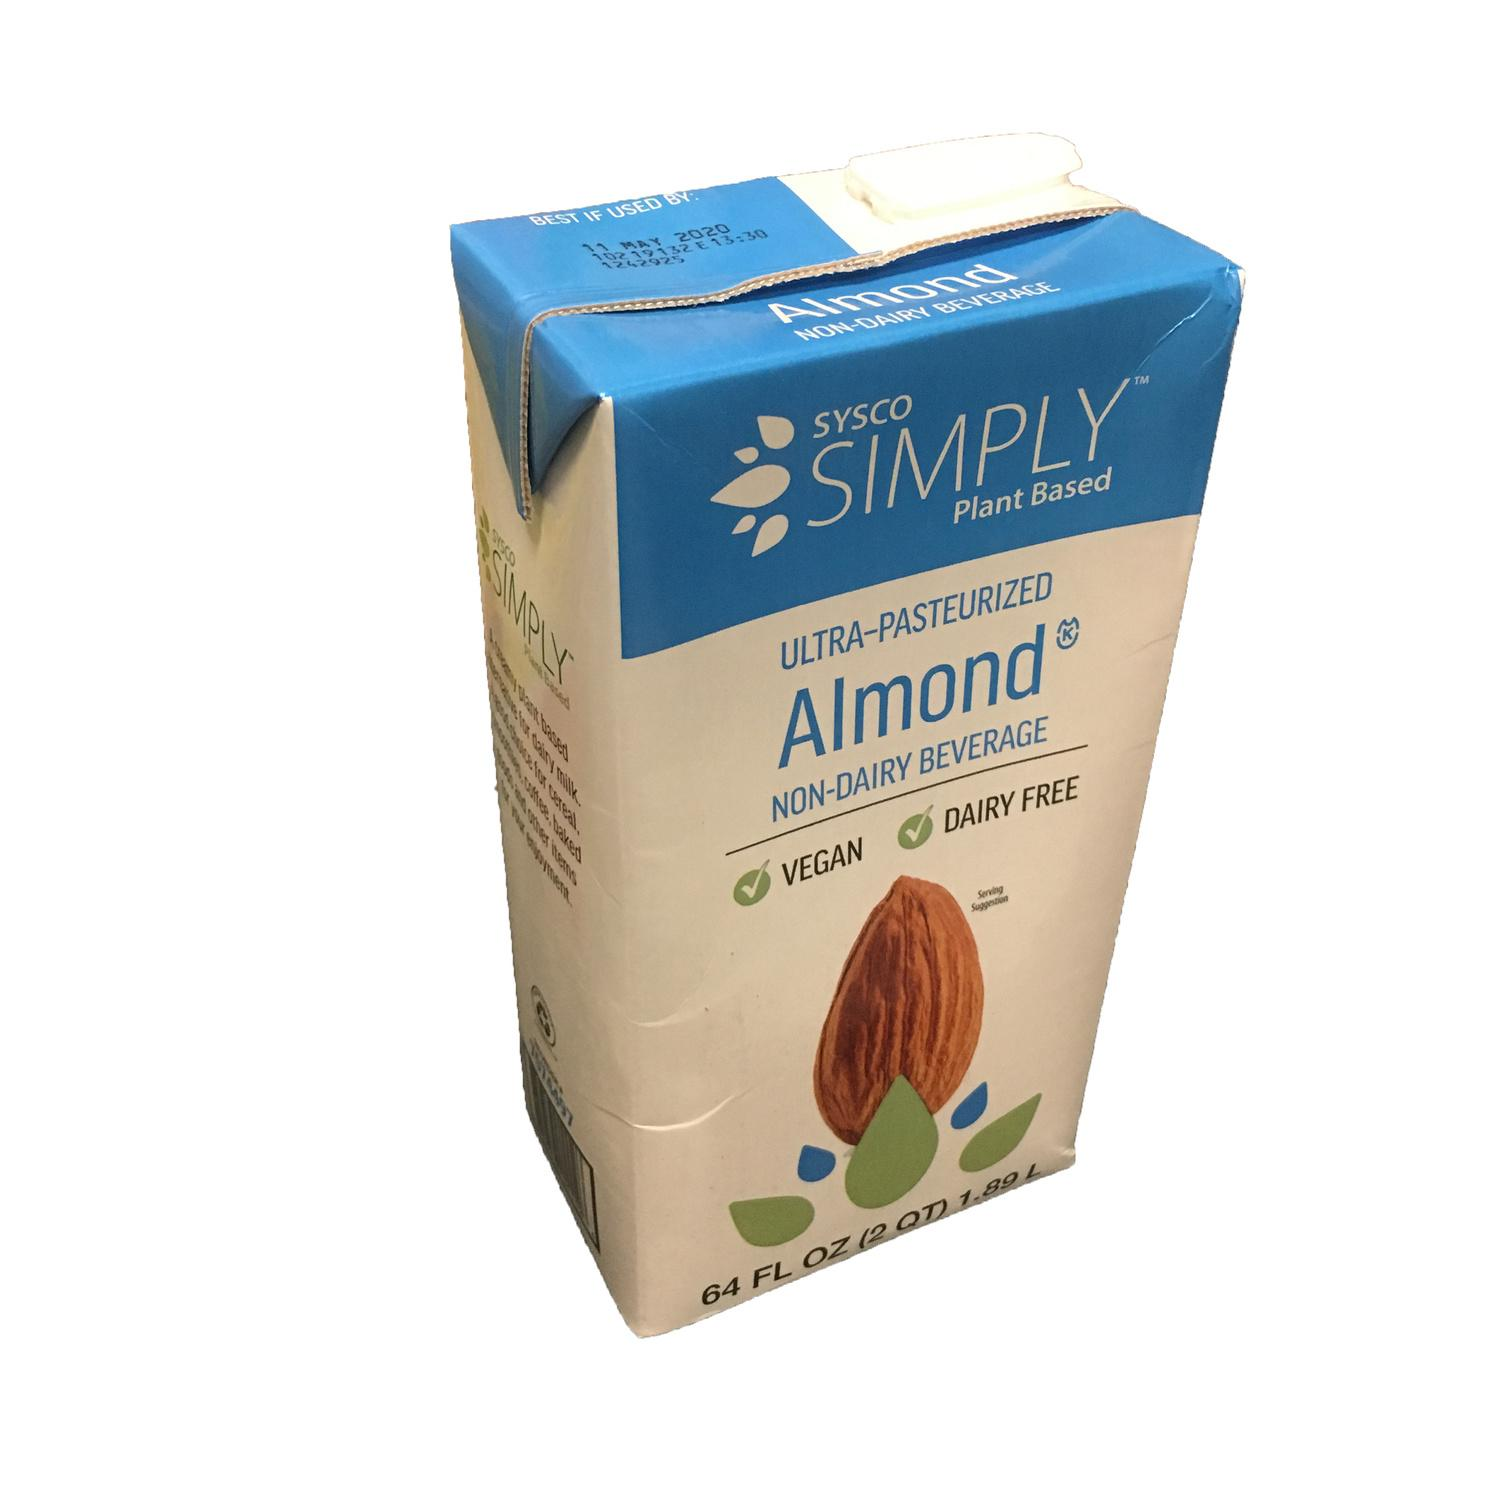 Image of Non-Dairy Unsweet Almond Beverage